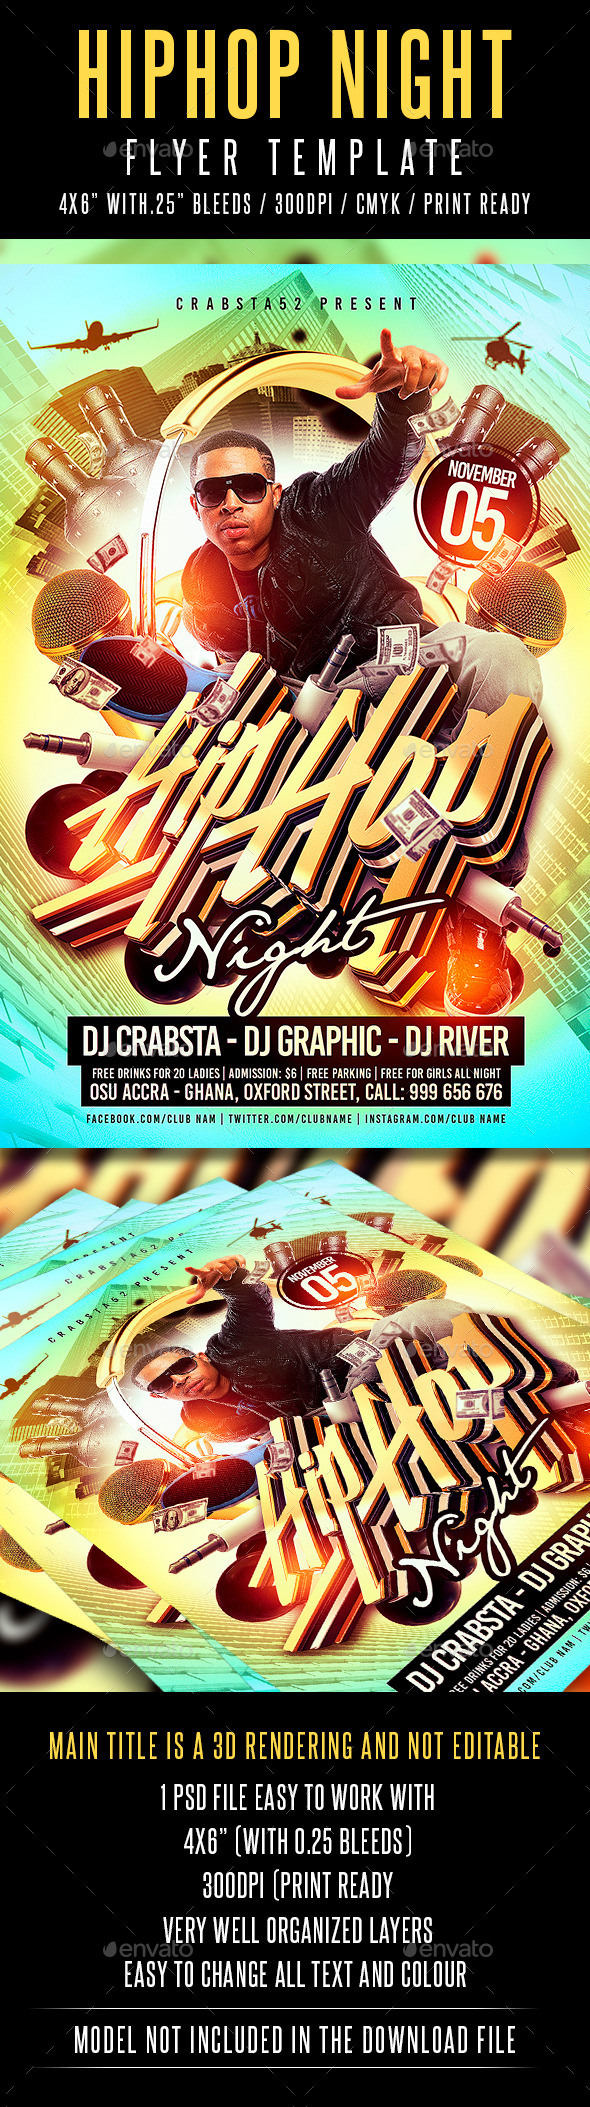 Hip Hop Night Flyer Template - Flyers Print Templates